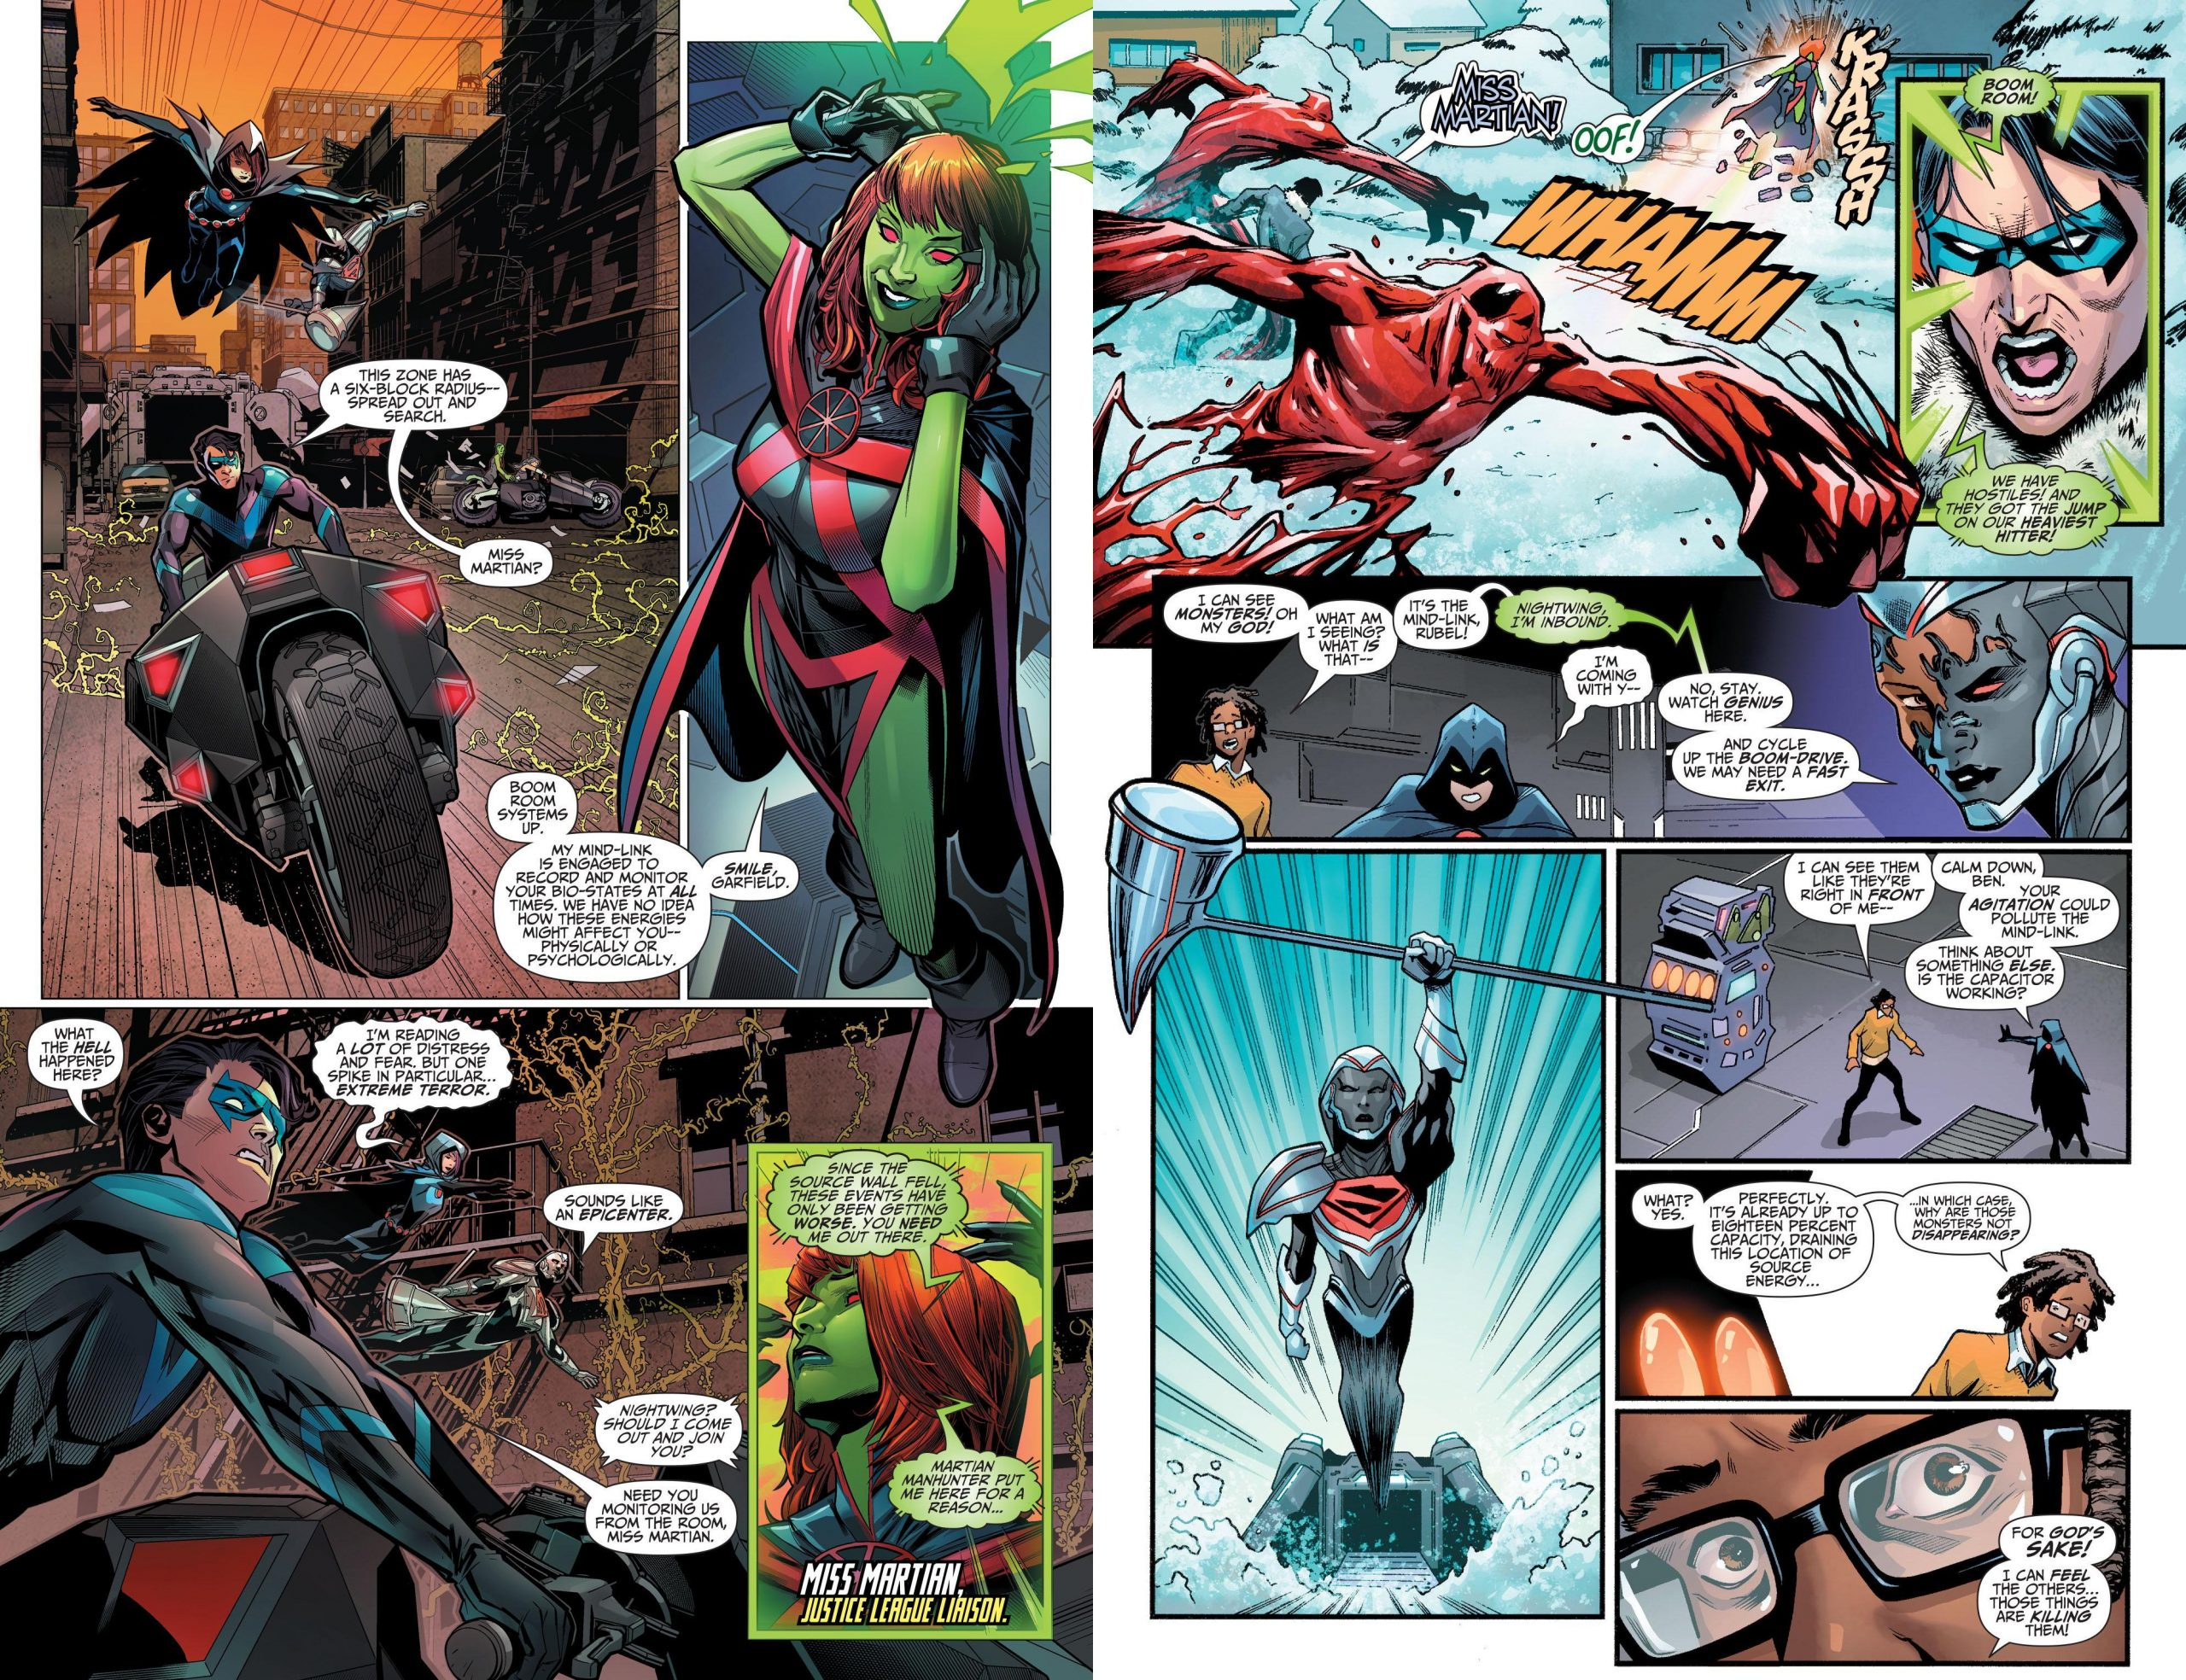 Titans v05 - The Spark review